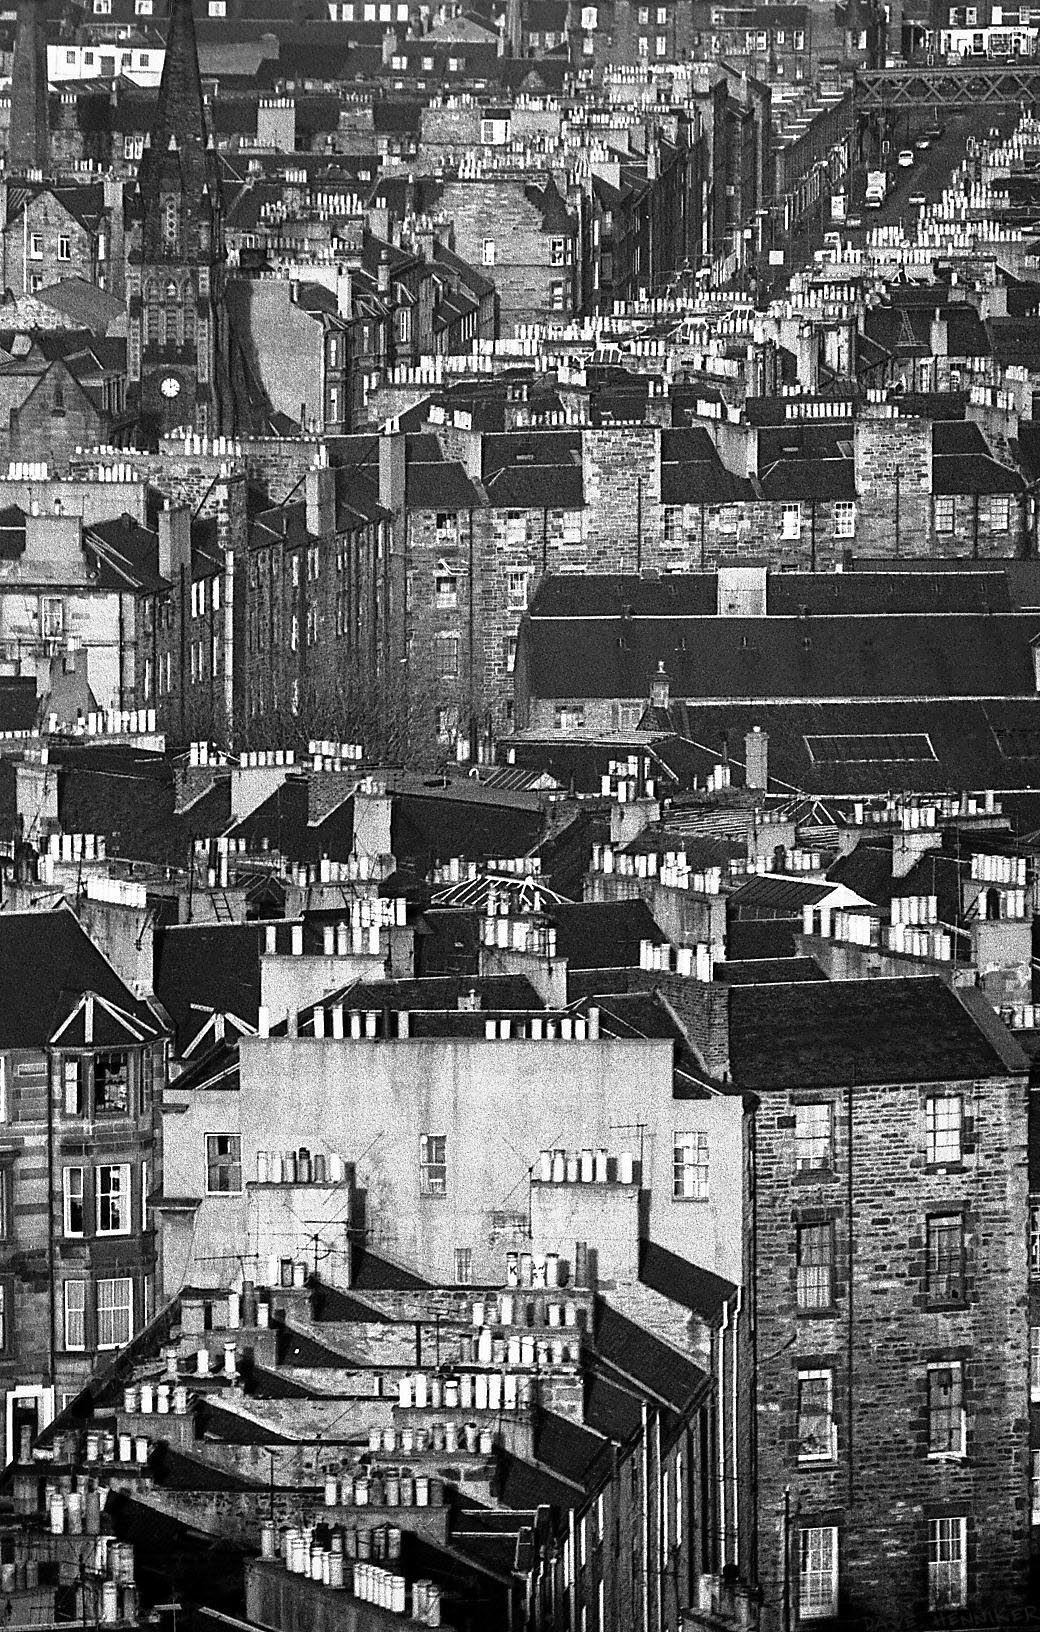 The same negative as the previous shot, this time showing more of the foreground. Taken from Calton Hill with 350mm lens. Later scan 1040 x 1632 pixels. Click the download icon to see full-size.